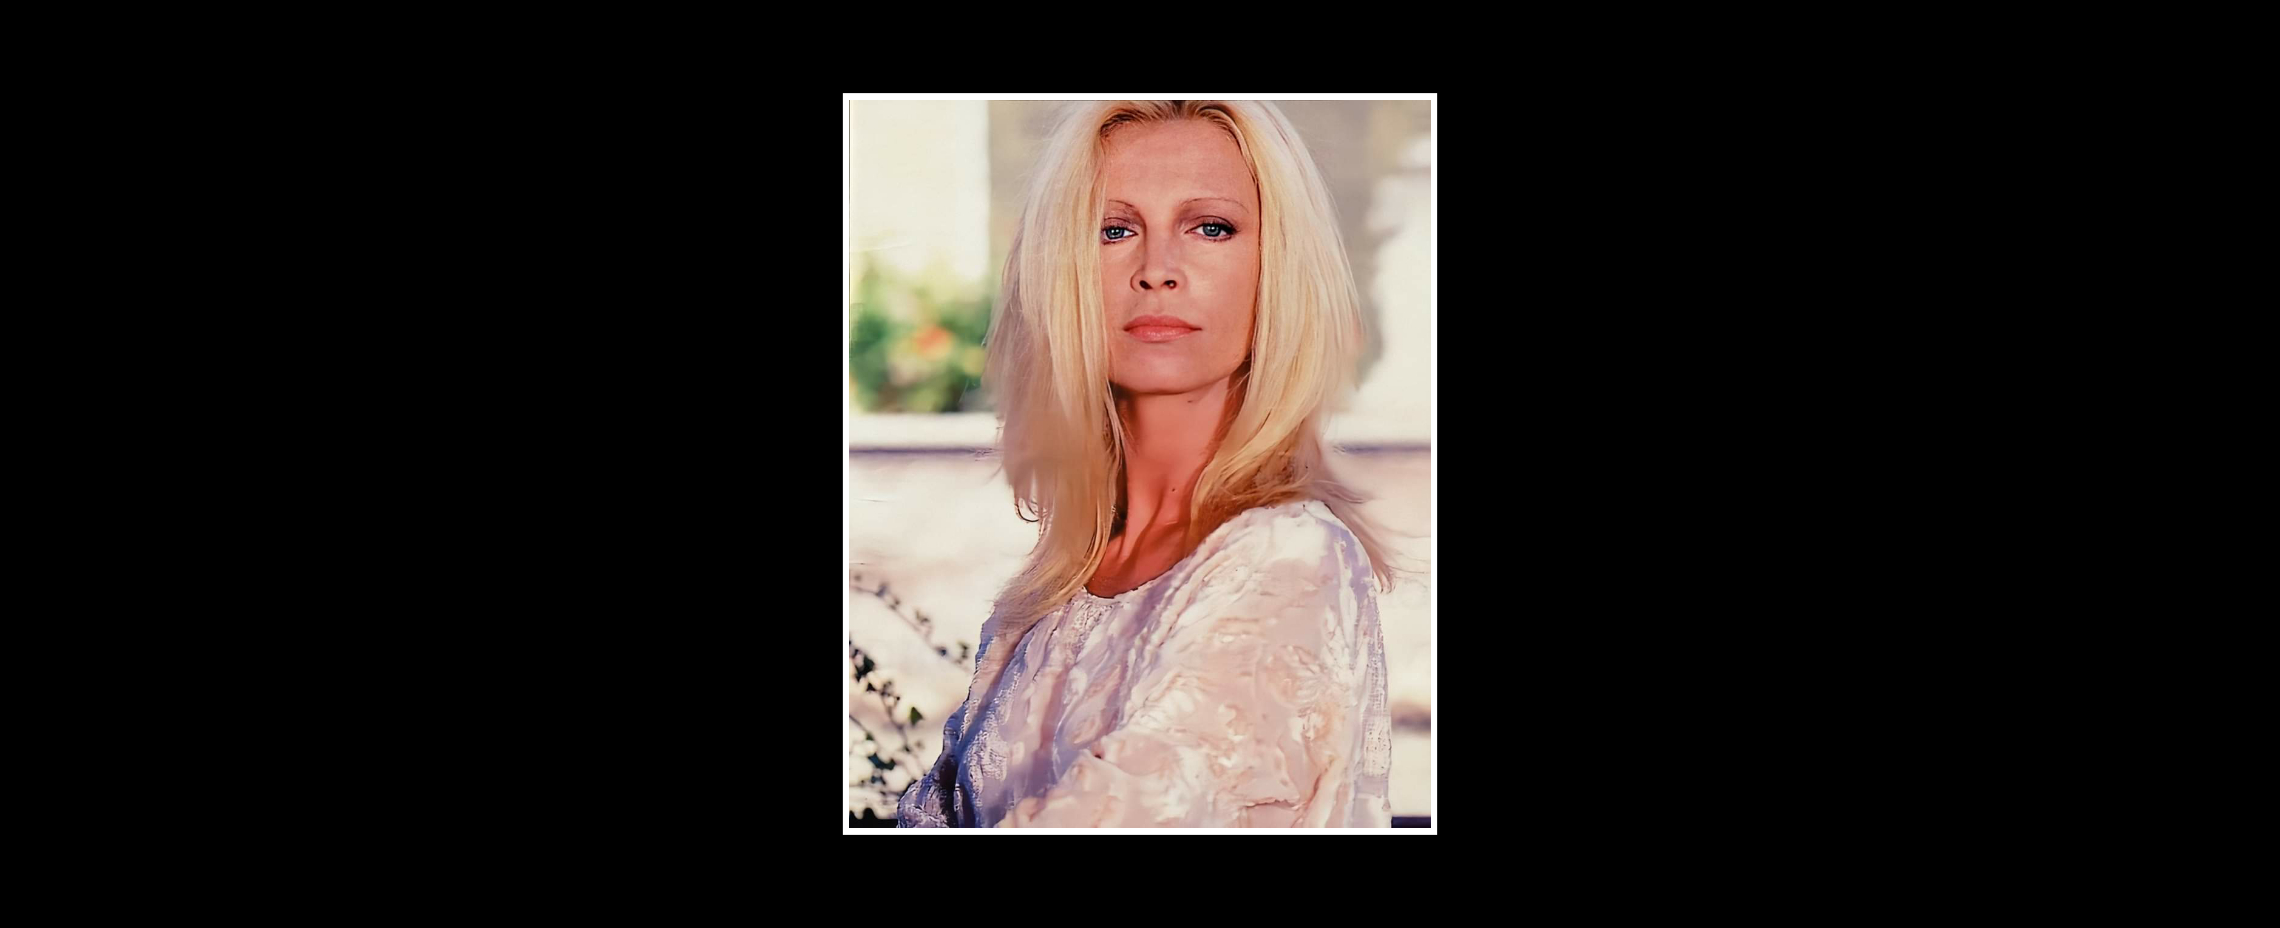 Patty Pravo PORTRAIT PHOTO CARLO BELLINCAMPI